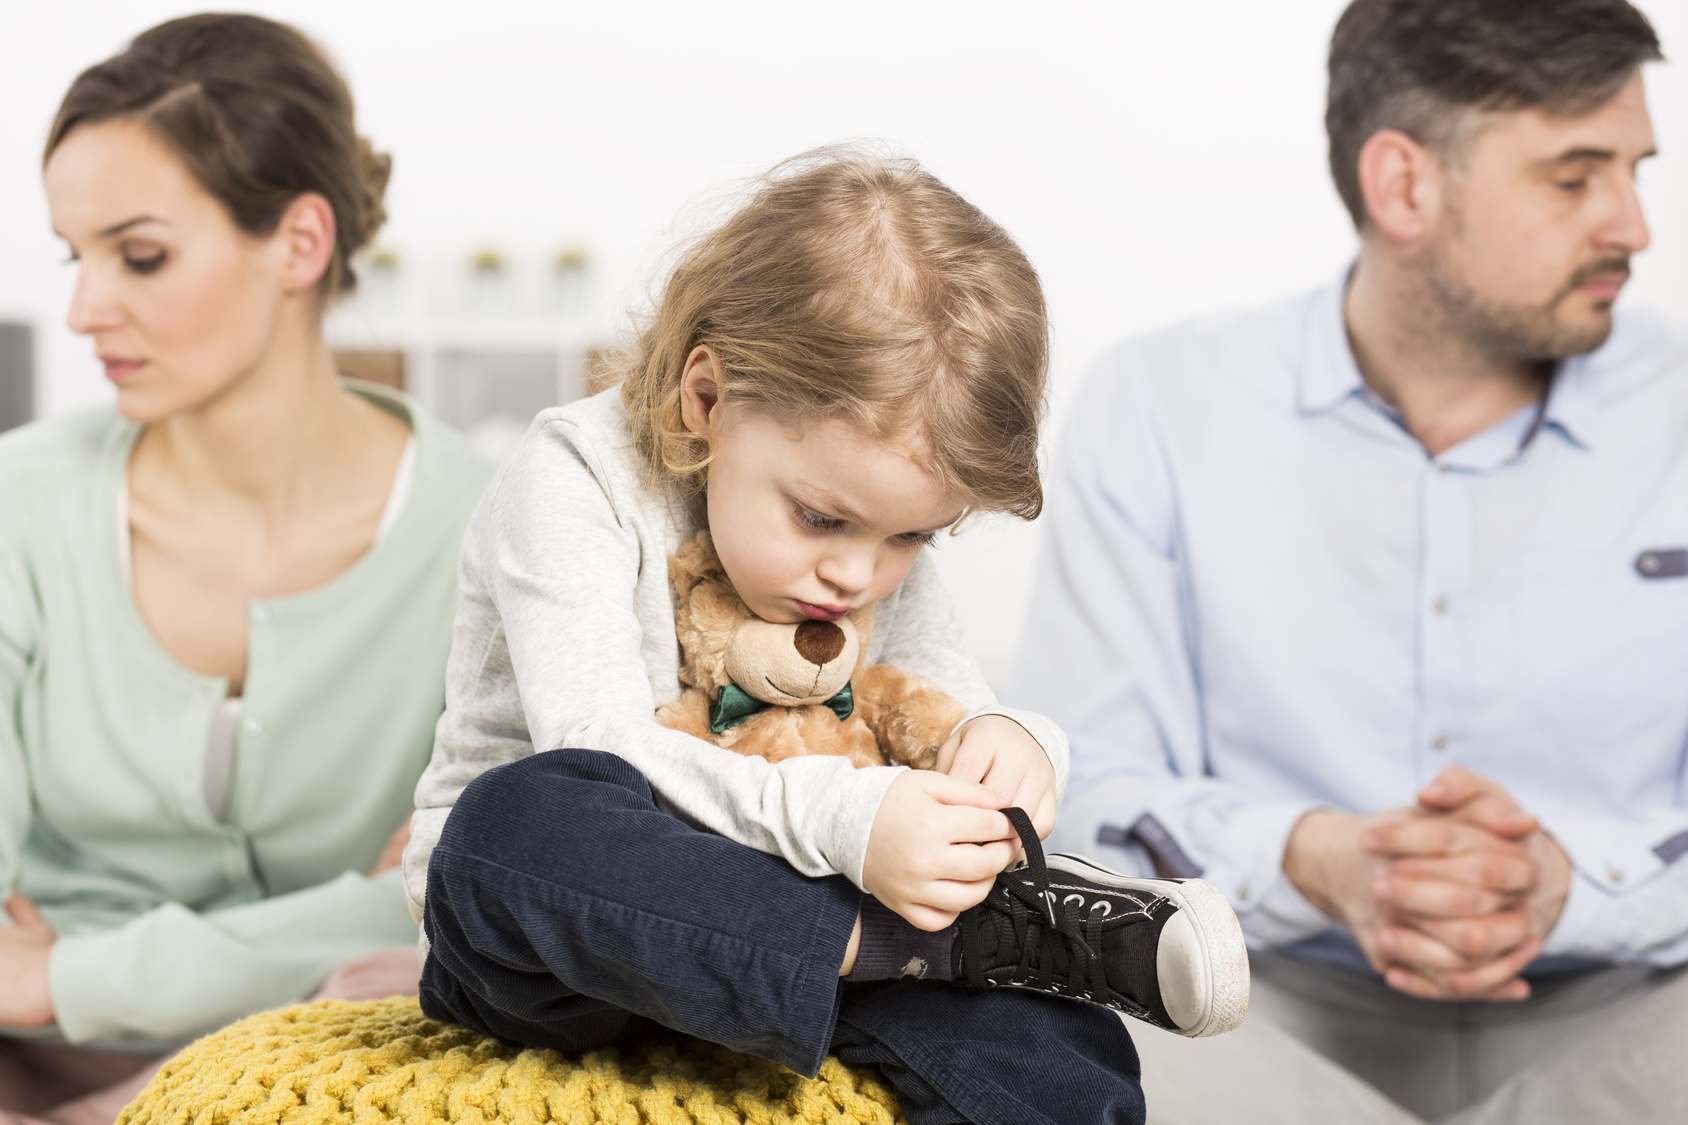 Child Custody Laws - Knowledge is Power - EDUCATION